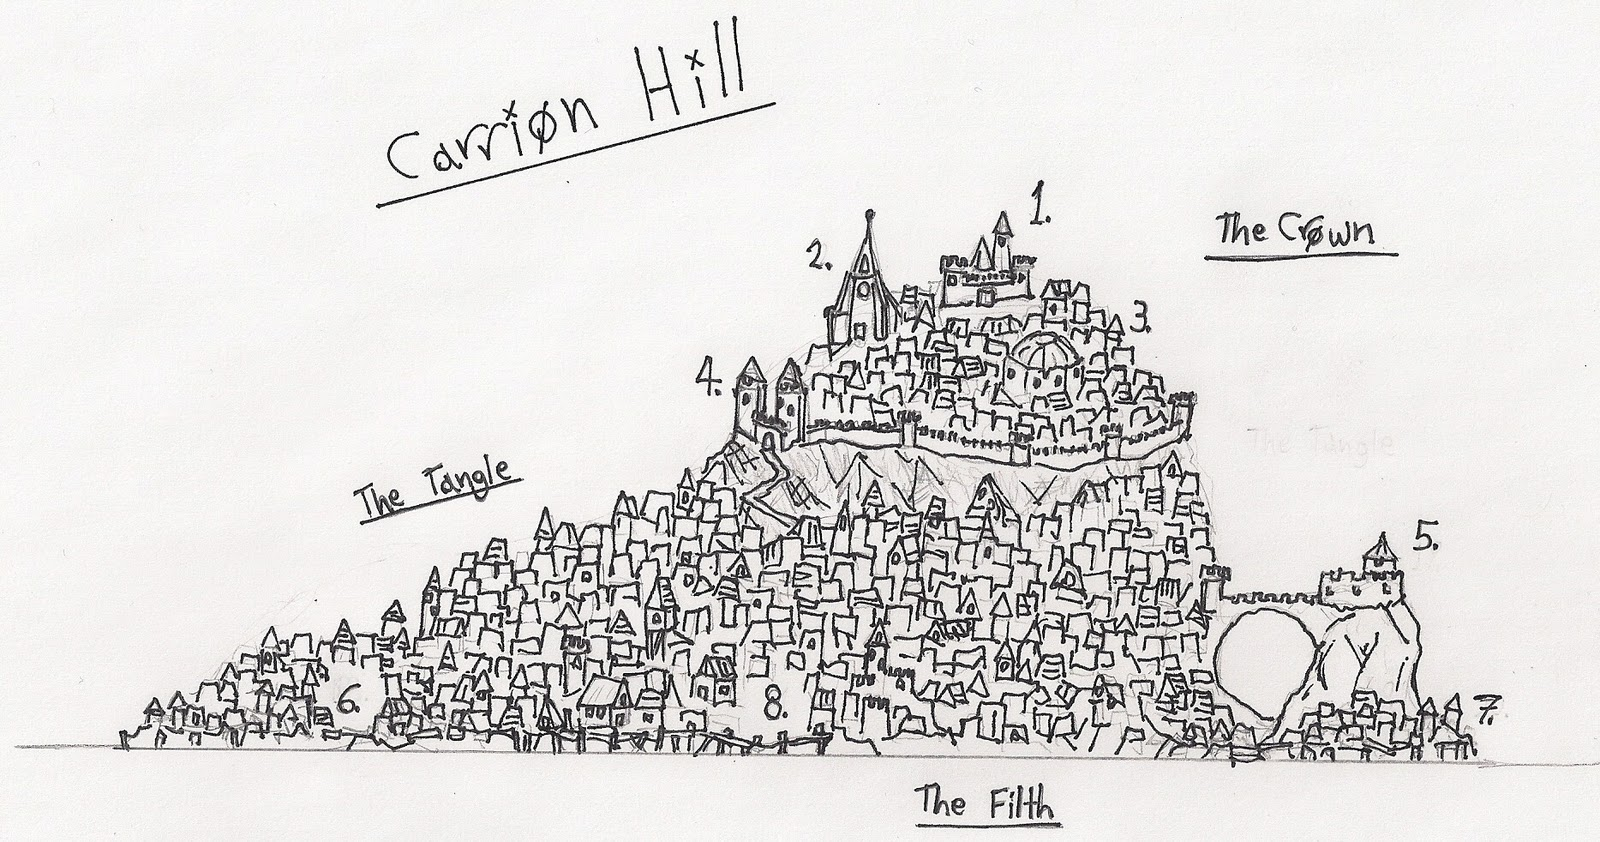 CarrionHillcross.jpg